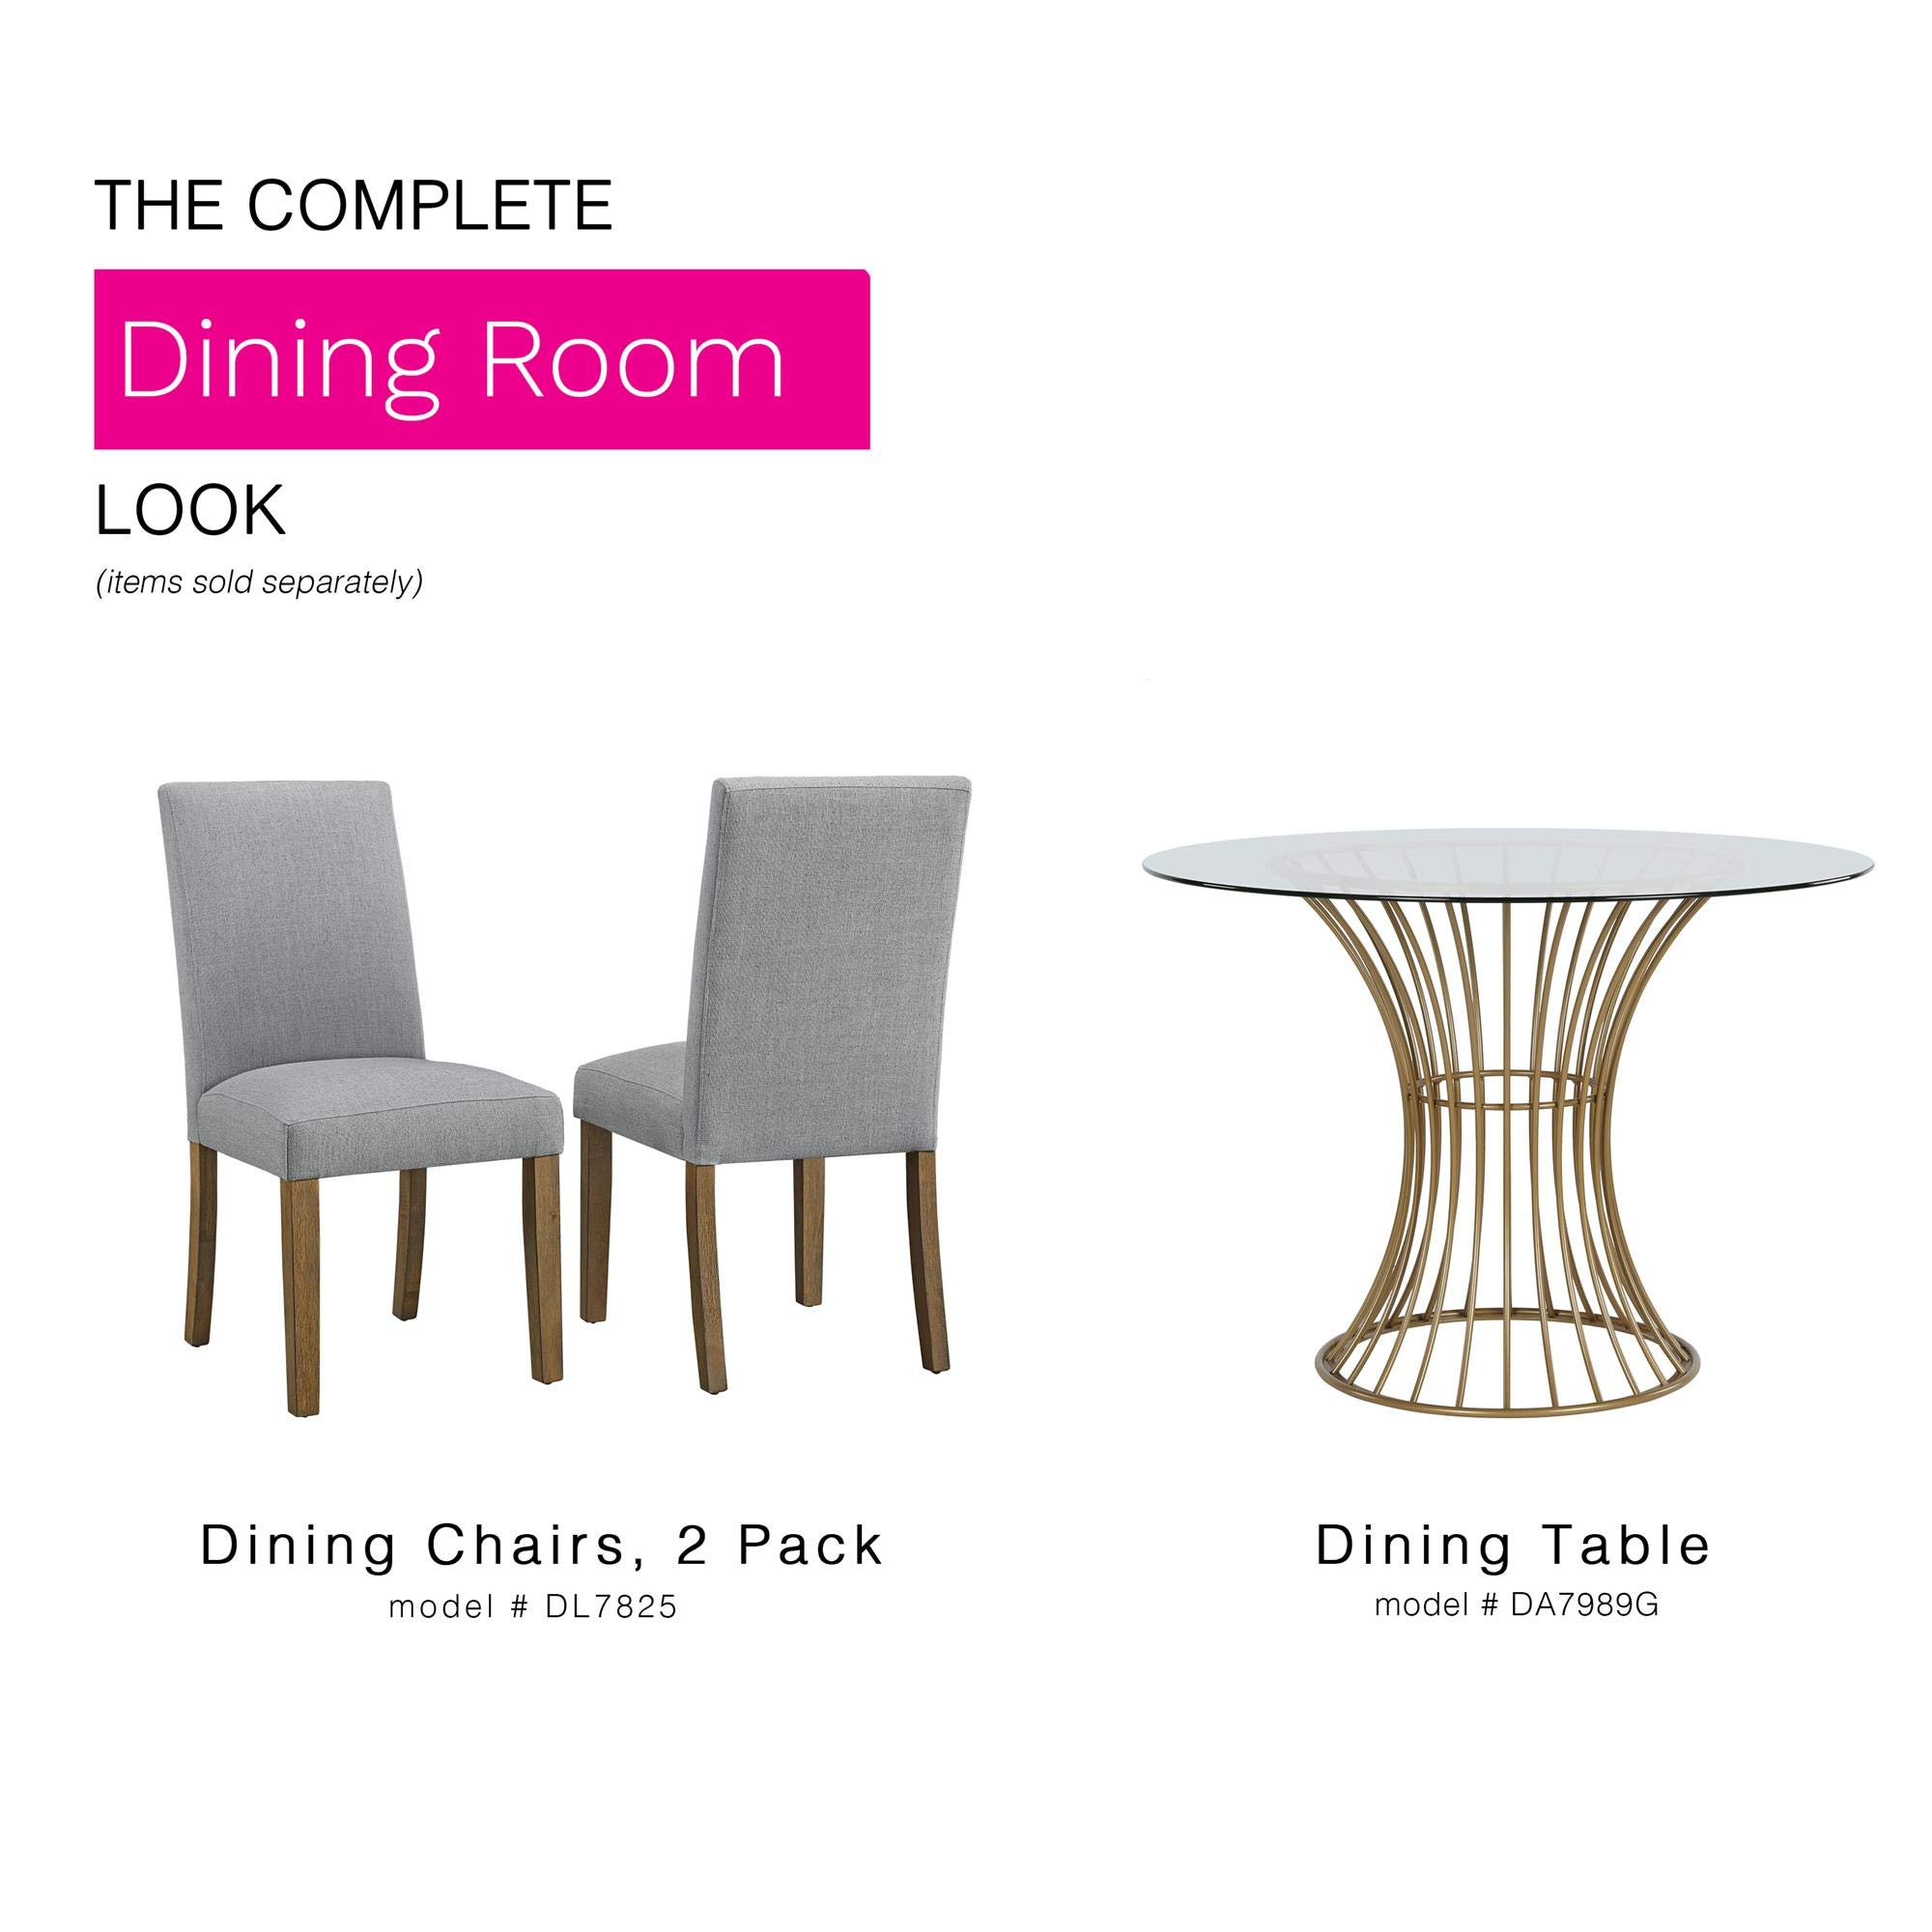 CosmoLiving Westwood Modern Clear Tempered Glass Round Top Dining Table with Hourglass Gold Base - Brass by CosmoLiving by Cosmopolitan (Image #6)